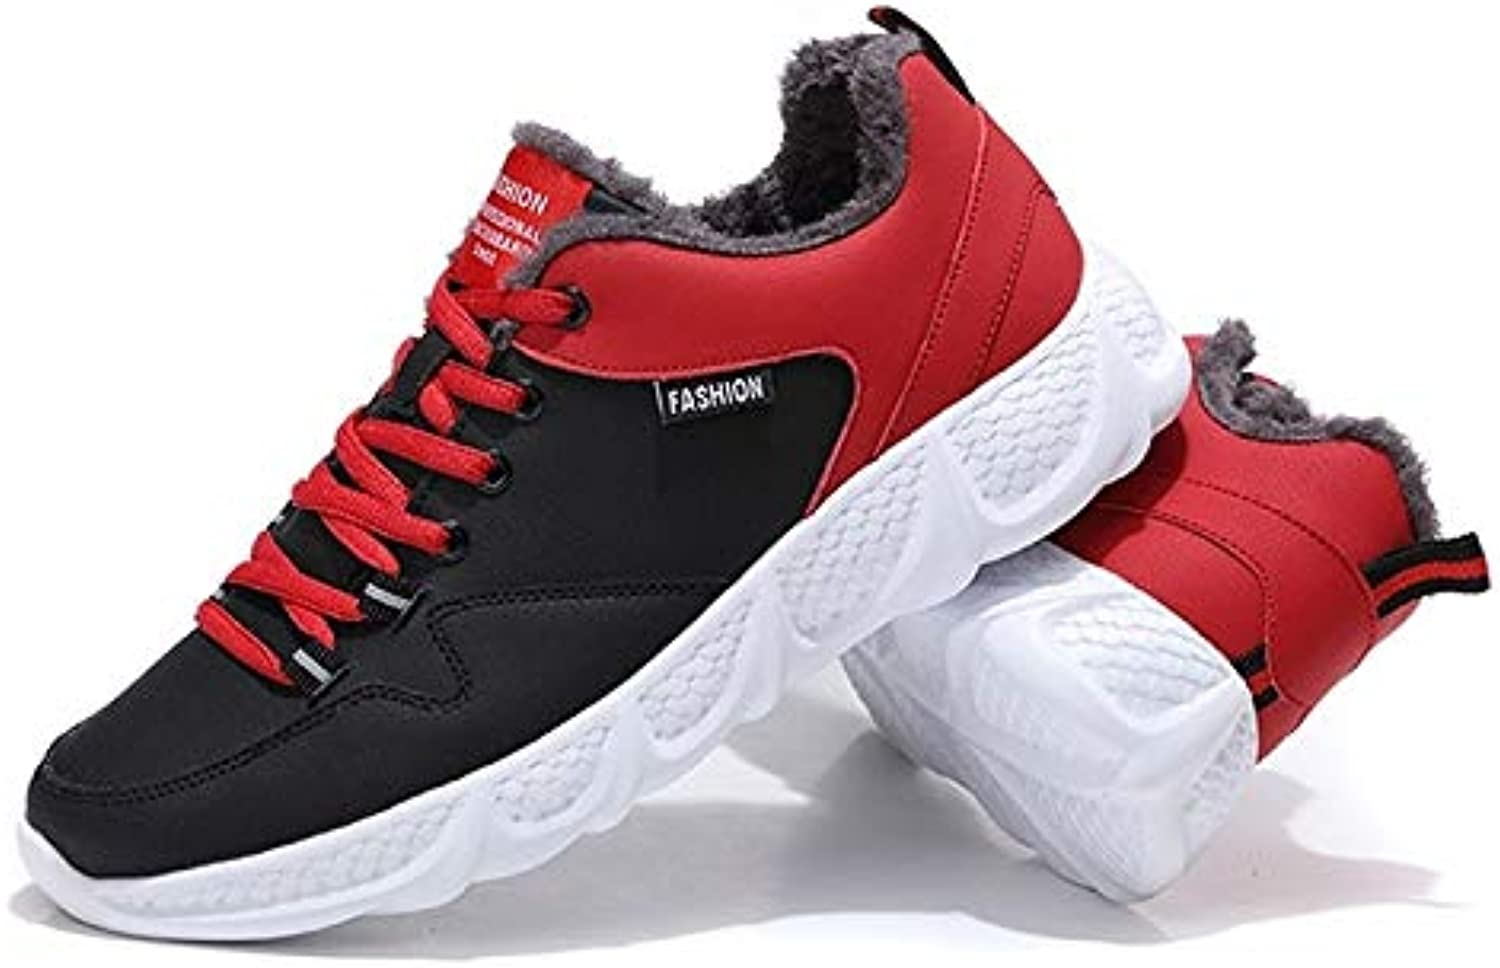 Anstorematealliance Outdoor&Sports shoes Lace-up Trend Outdoor Comfortable Casual Warm shoes (color Black Red Size 38)